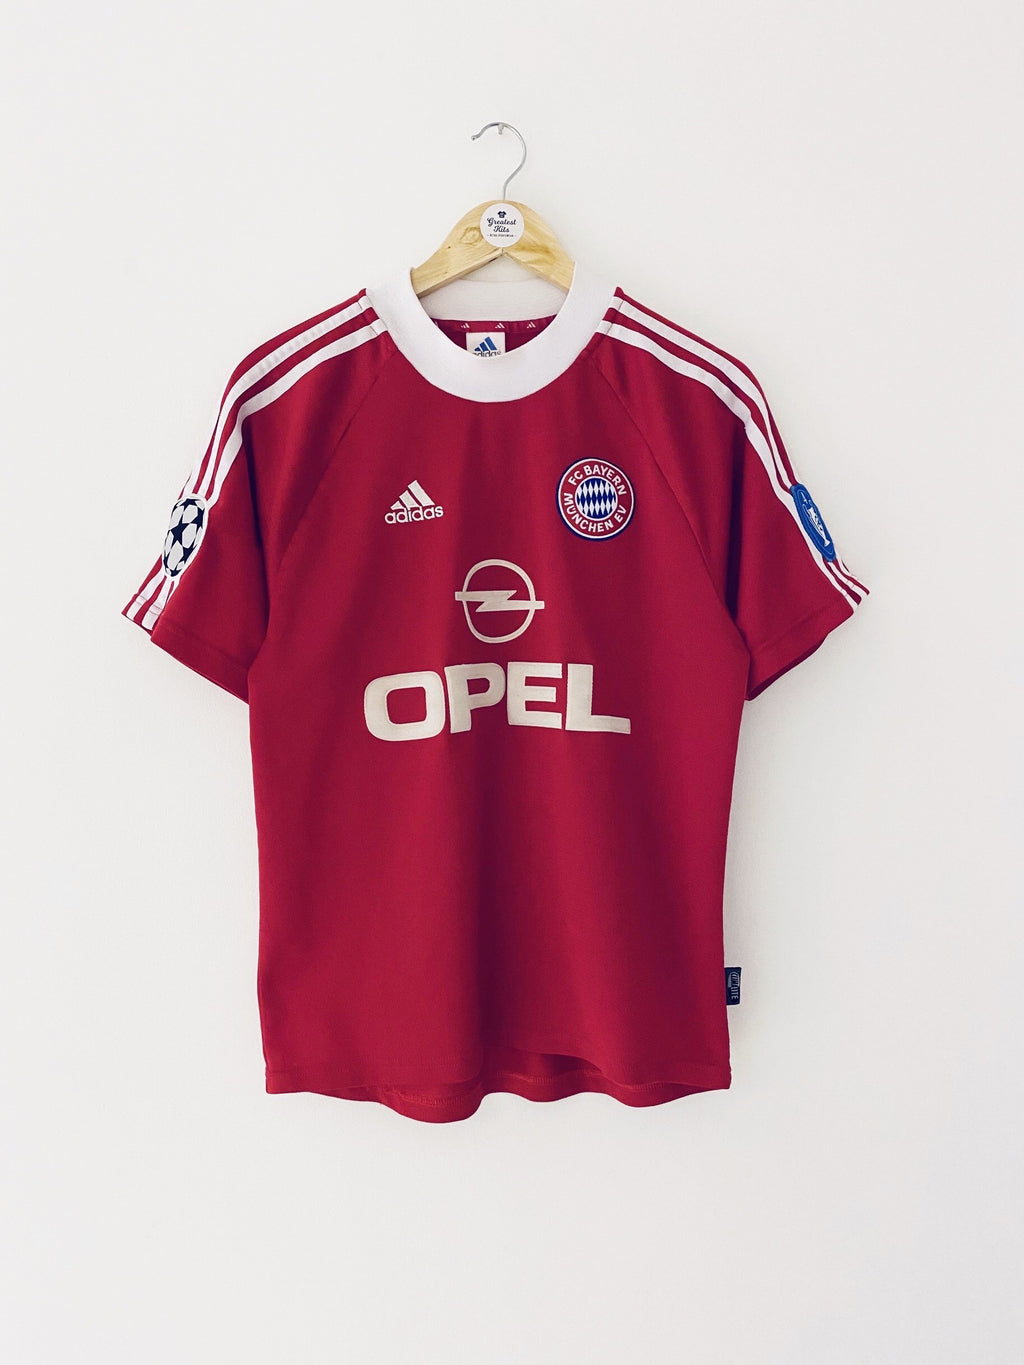 2001/02 Bayern Munich CL Shirt (S) 9/10